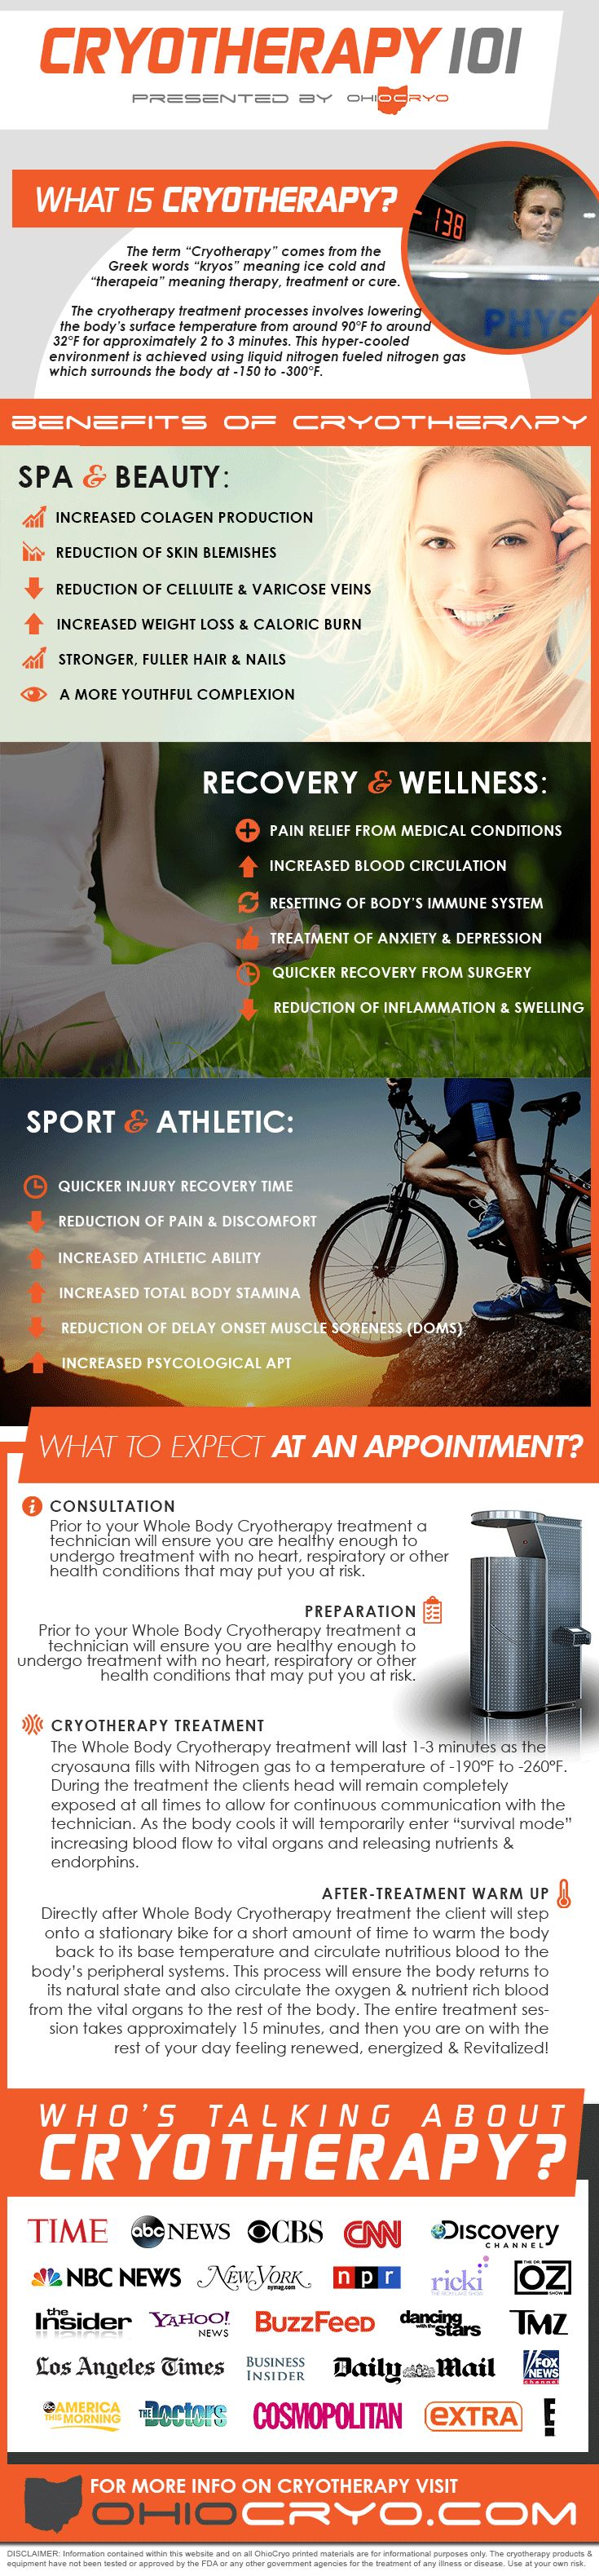 Cryotherapy 101 from OhioCryo: Whole Body Cryotherapy is the latest trend that has seen a boom in popularity thanks to its use by celebrities and athletes alike. But what is Whole Body Cryotherapy? OhioCryo breaks down the basics, including what cryotherapy is, the benefits of cryotherapy, the treatment process and more! #cryotherapy #cryo # WBC For more information visit http://OhioCryo.com